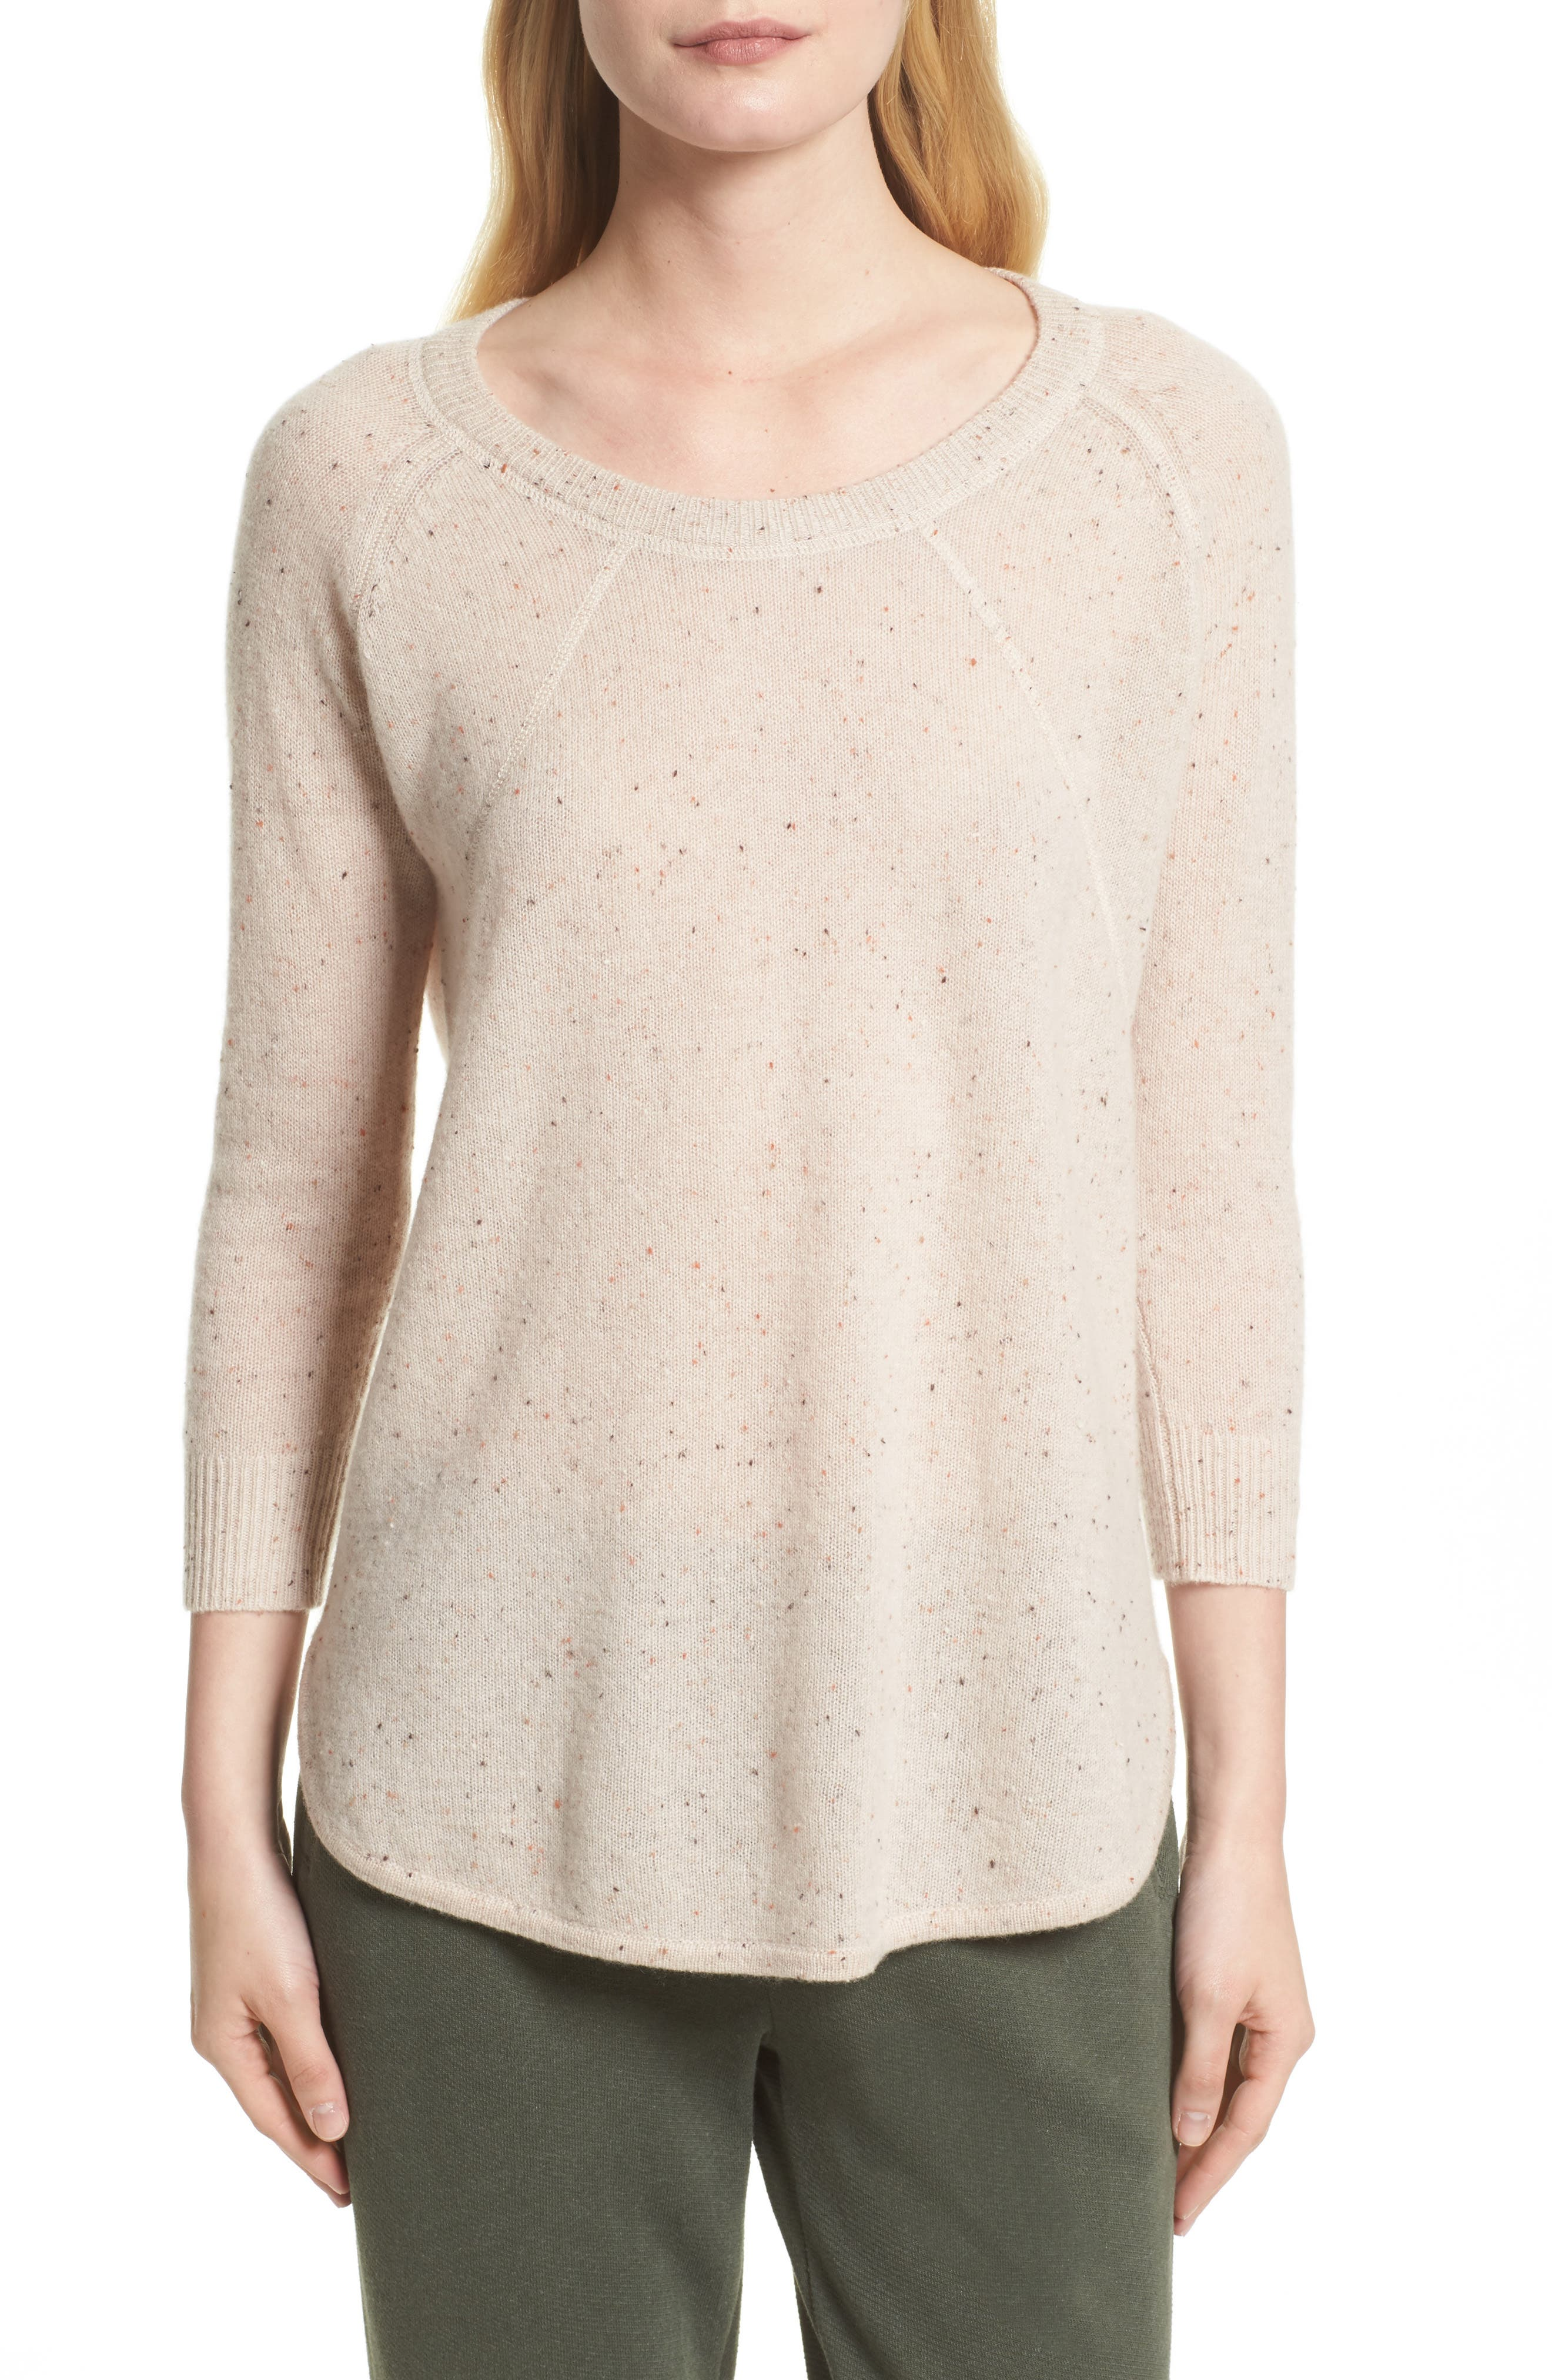 ATM Anthony Thomas Melillo Cashmere Sweater (Nordstrom Exclusive)